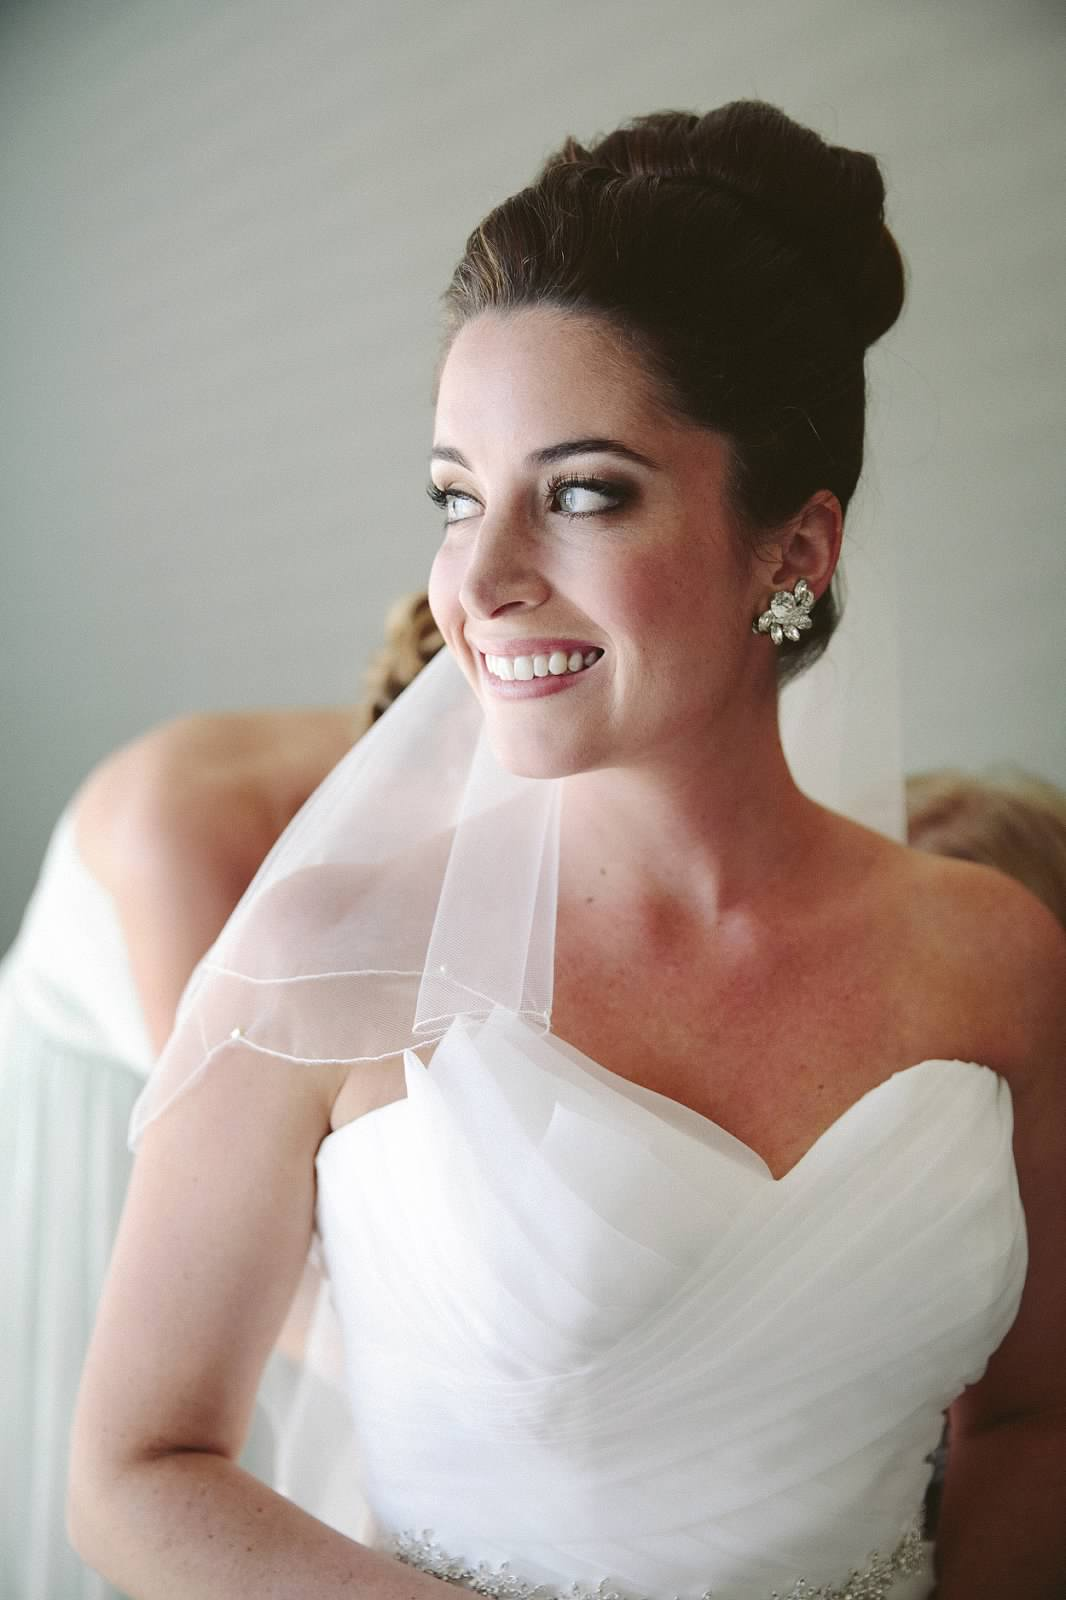 Lodge-at-Tiburon-Wedding-Hair-and-Makeup.JPG